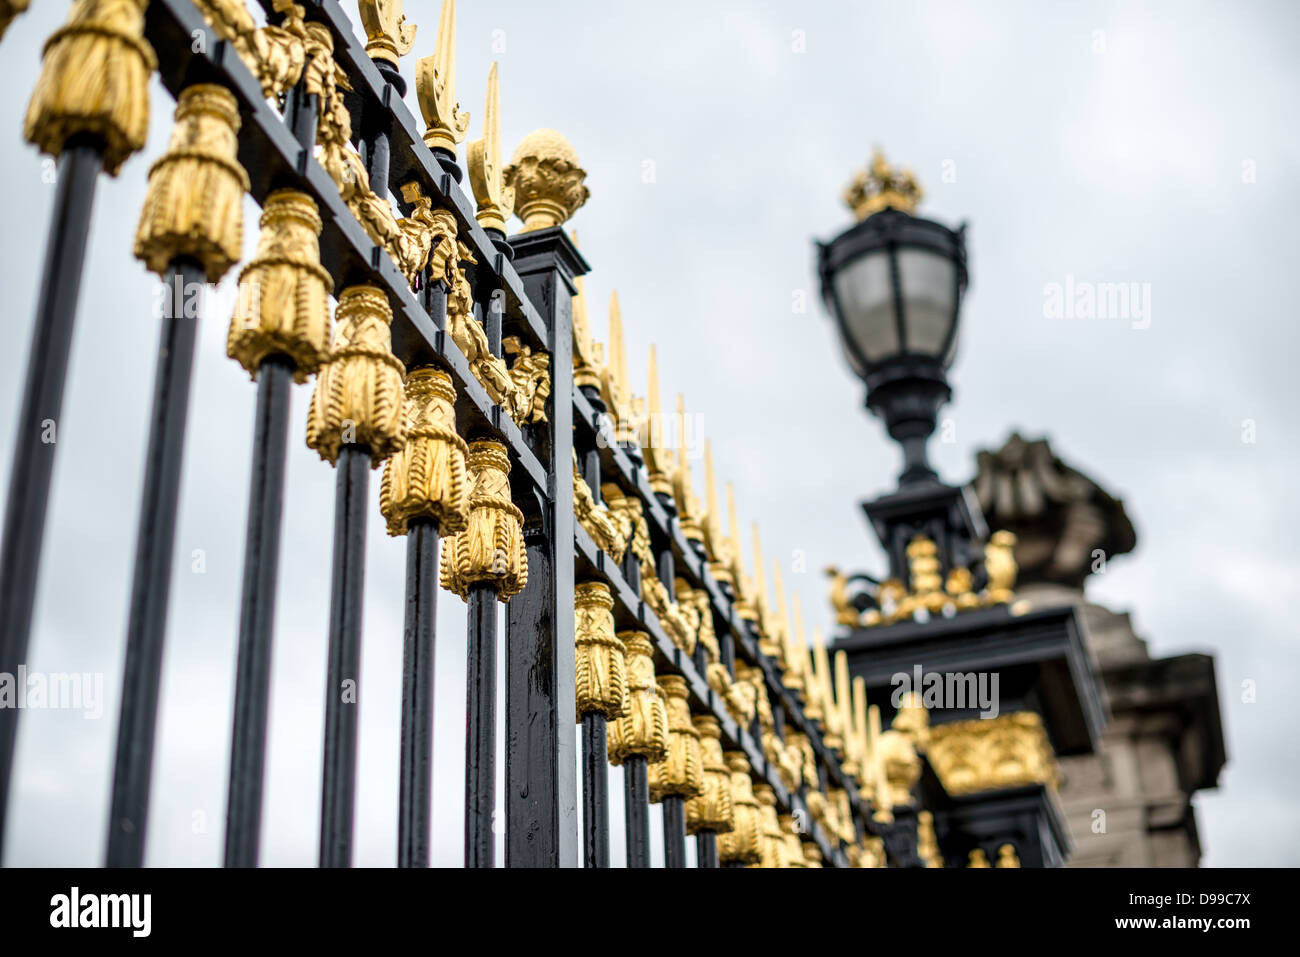 BRUSSELS, Belgium - Gold decorated gates in front of the Royal Palace of Brussels, the official palace of the Belgian - Stock Image